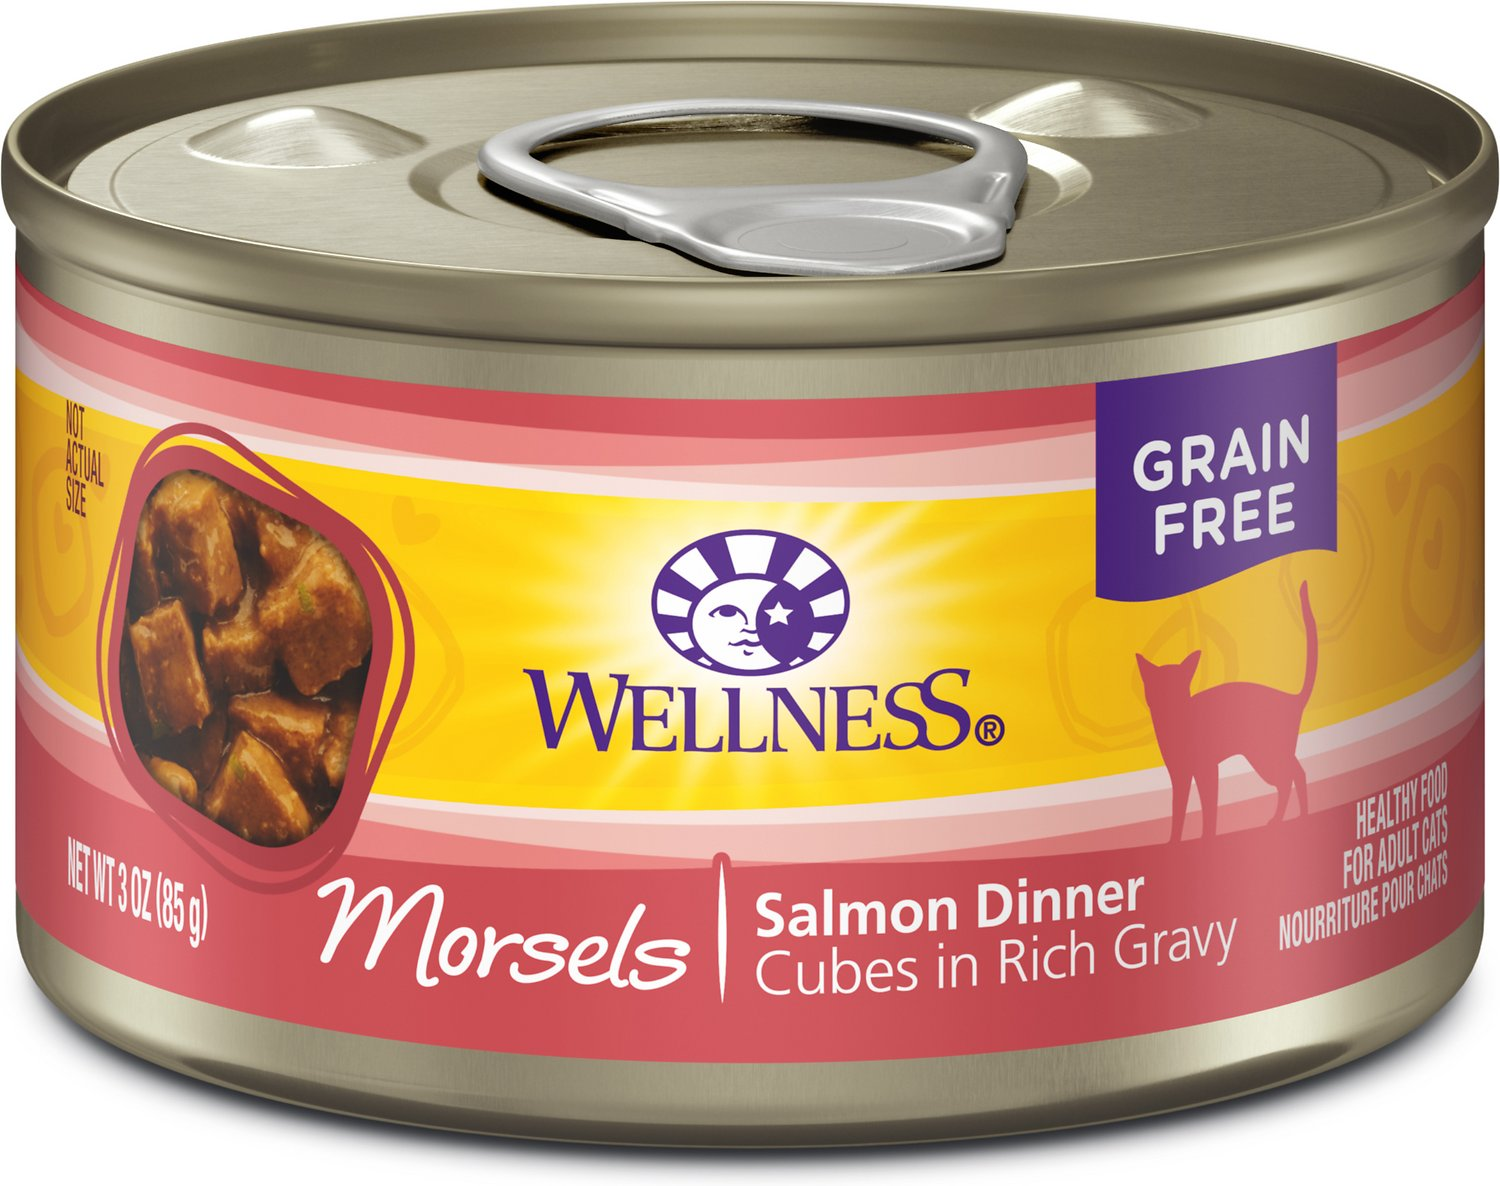 Wellness Cubed Salmon Dinner Morsels in Gravy Grain-Free Canned Cat Food, 3-oz